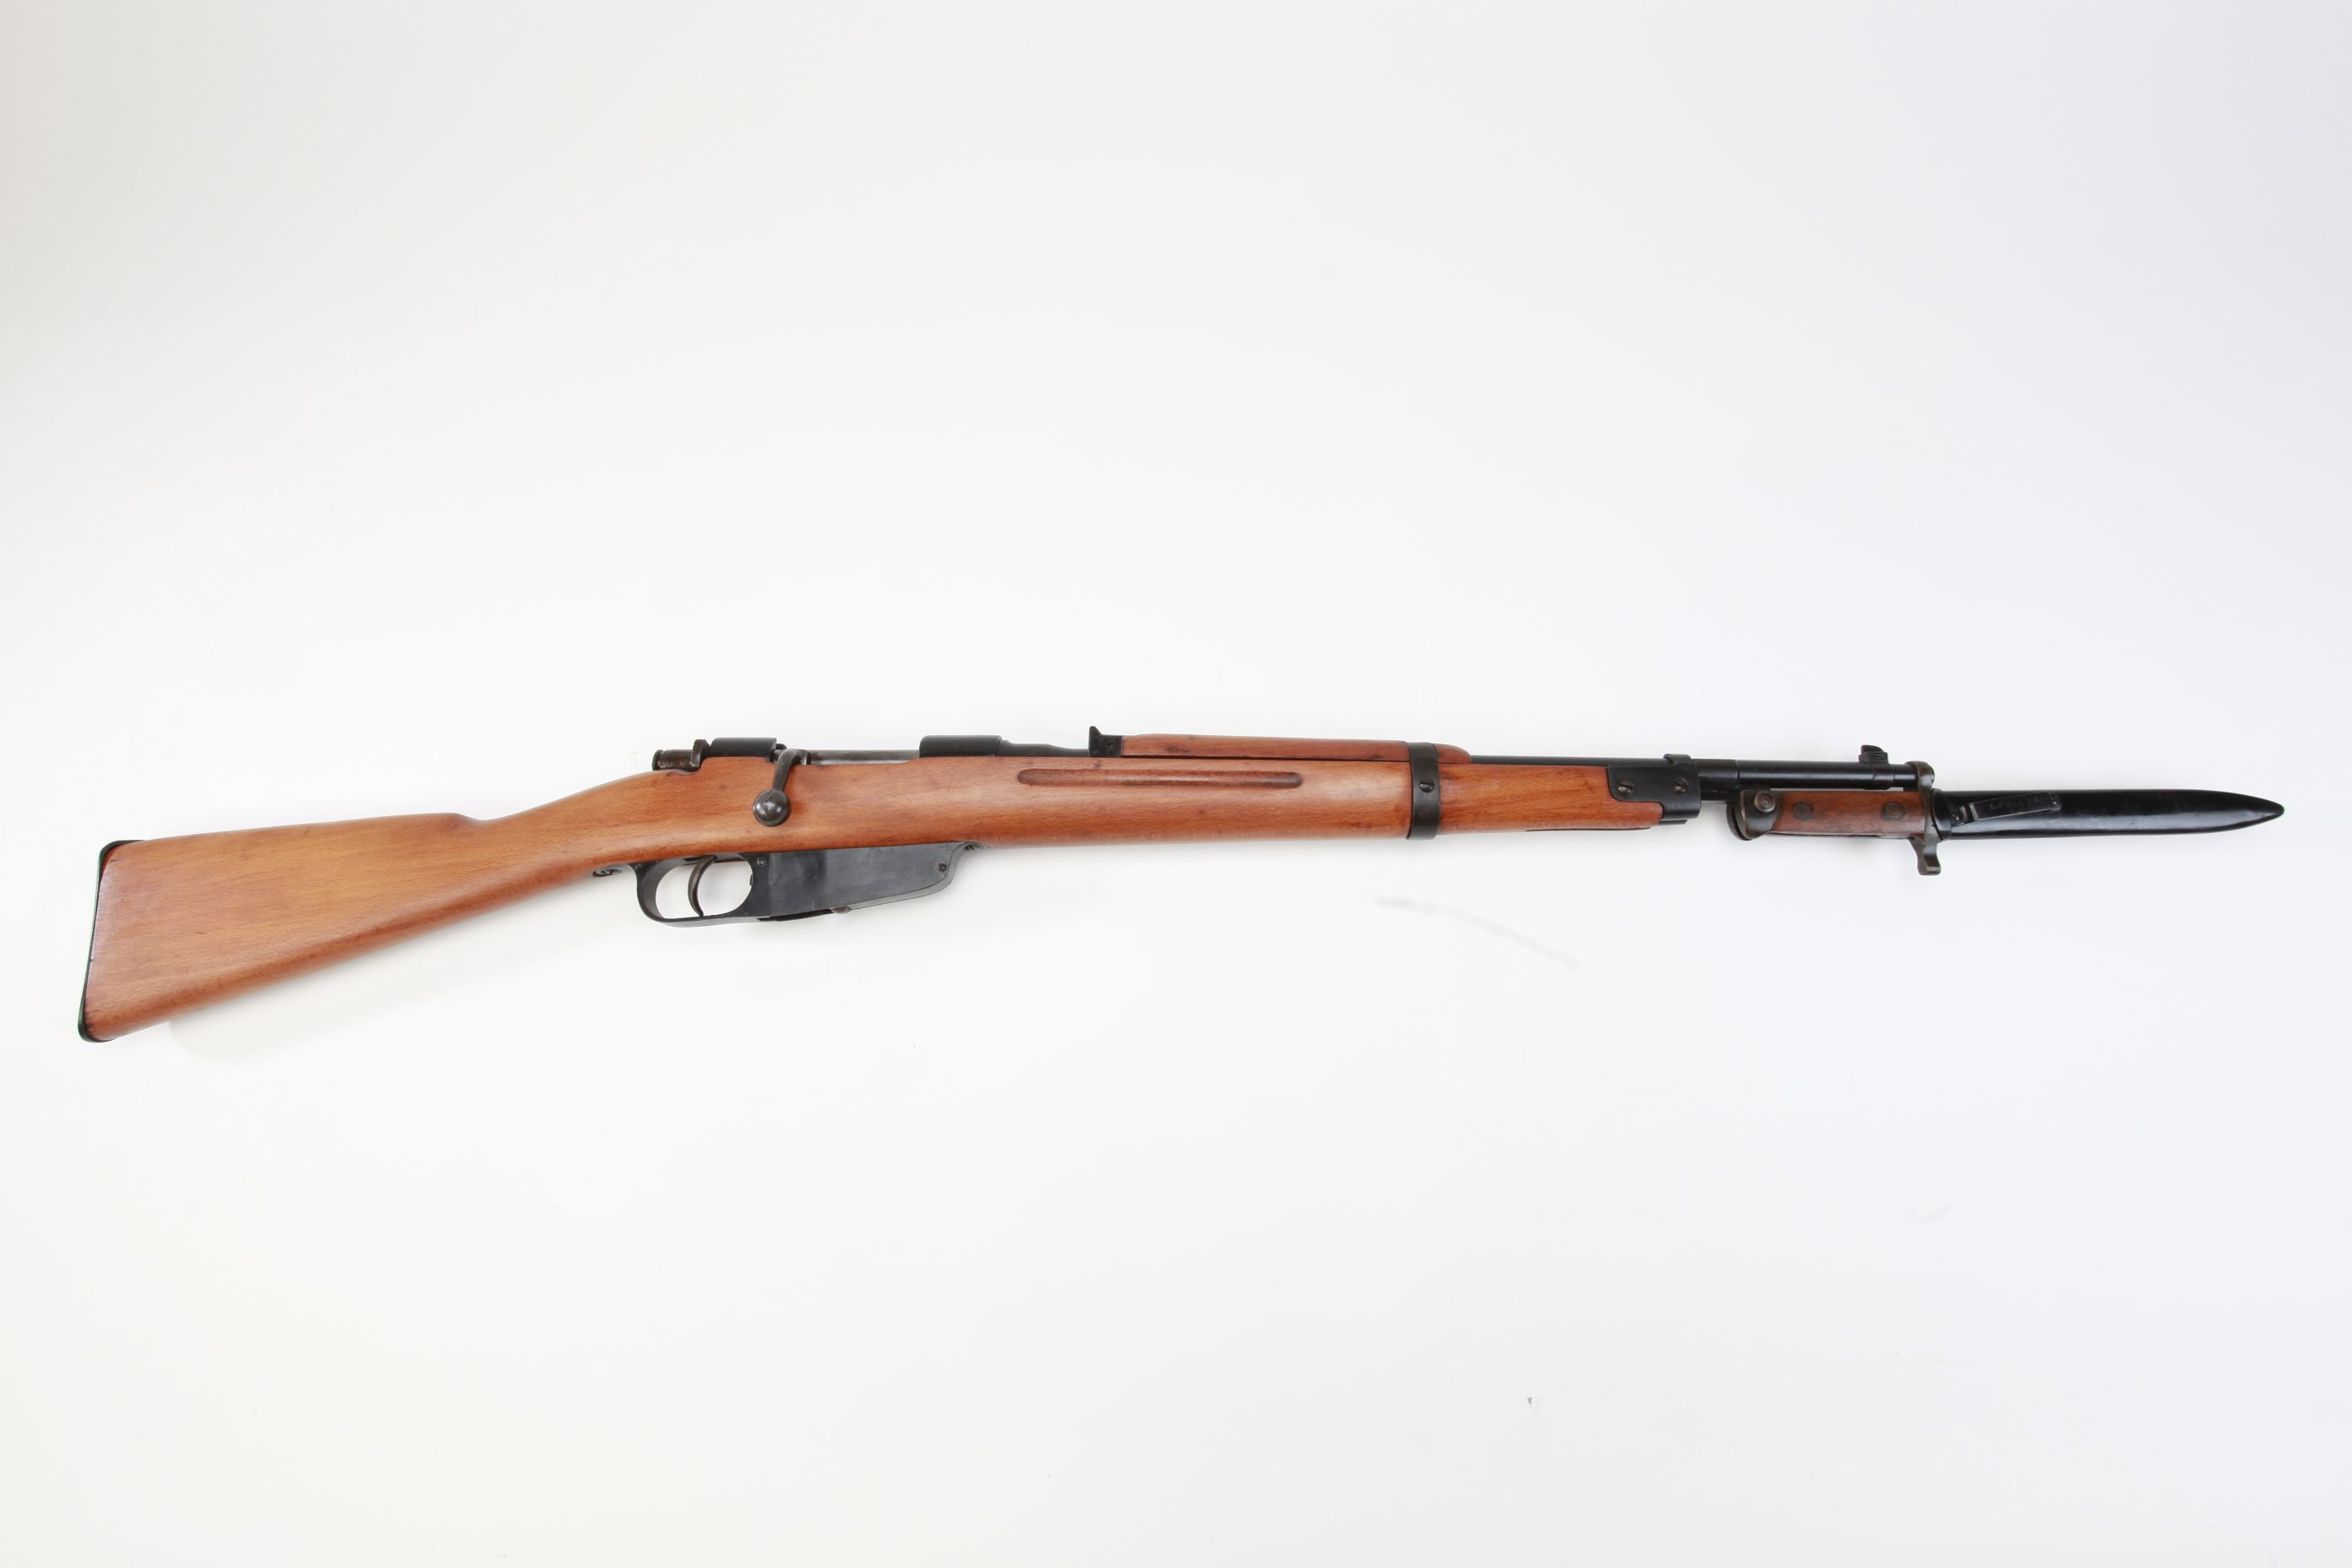 Brescia Mannlicher Carcano Model 1938 Bolt Action Rifle